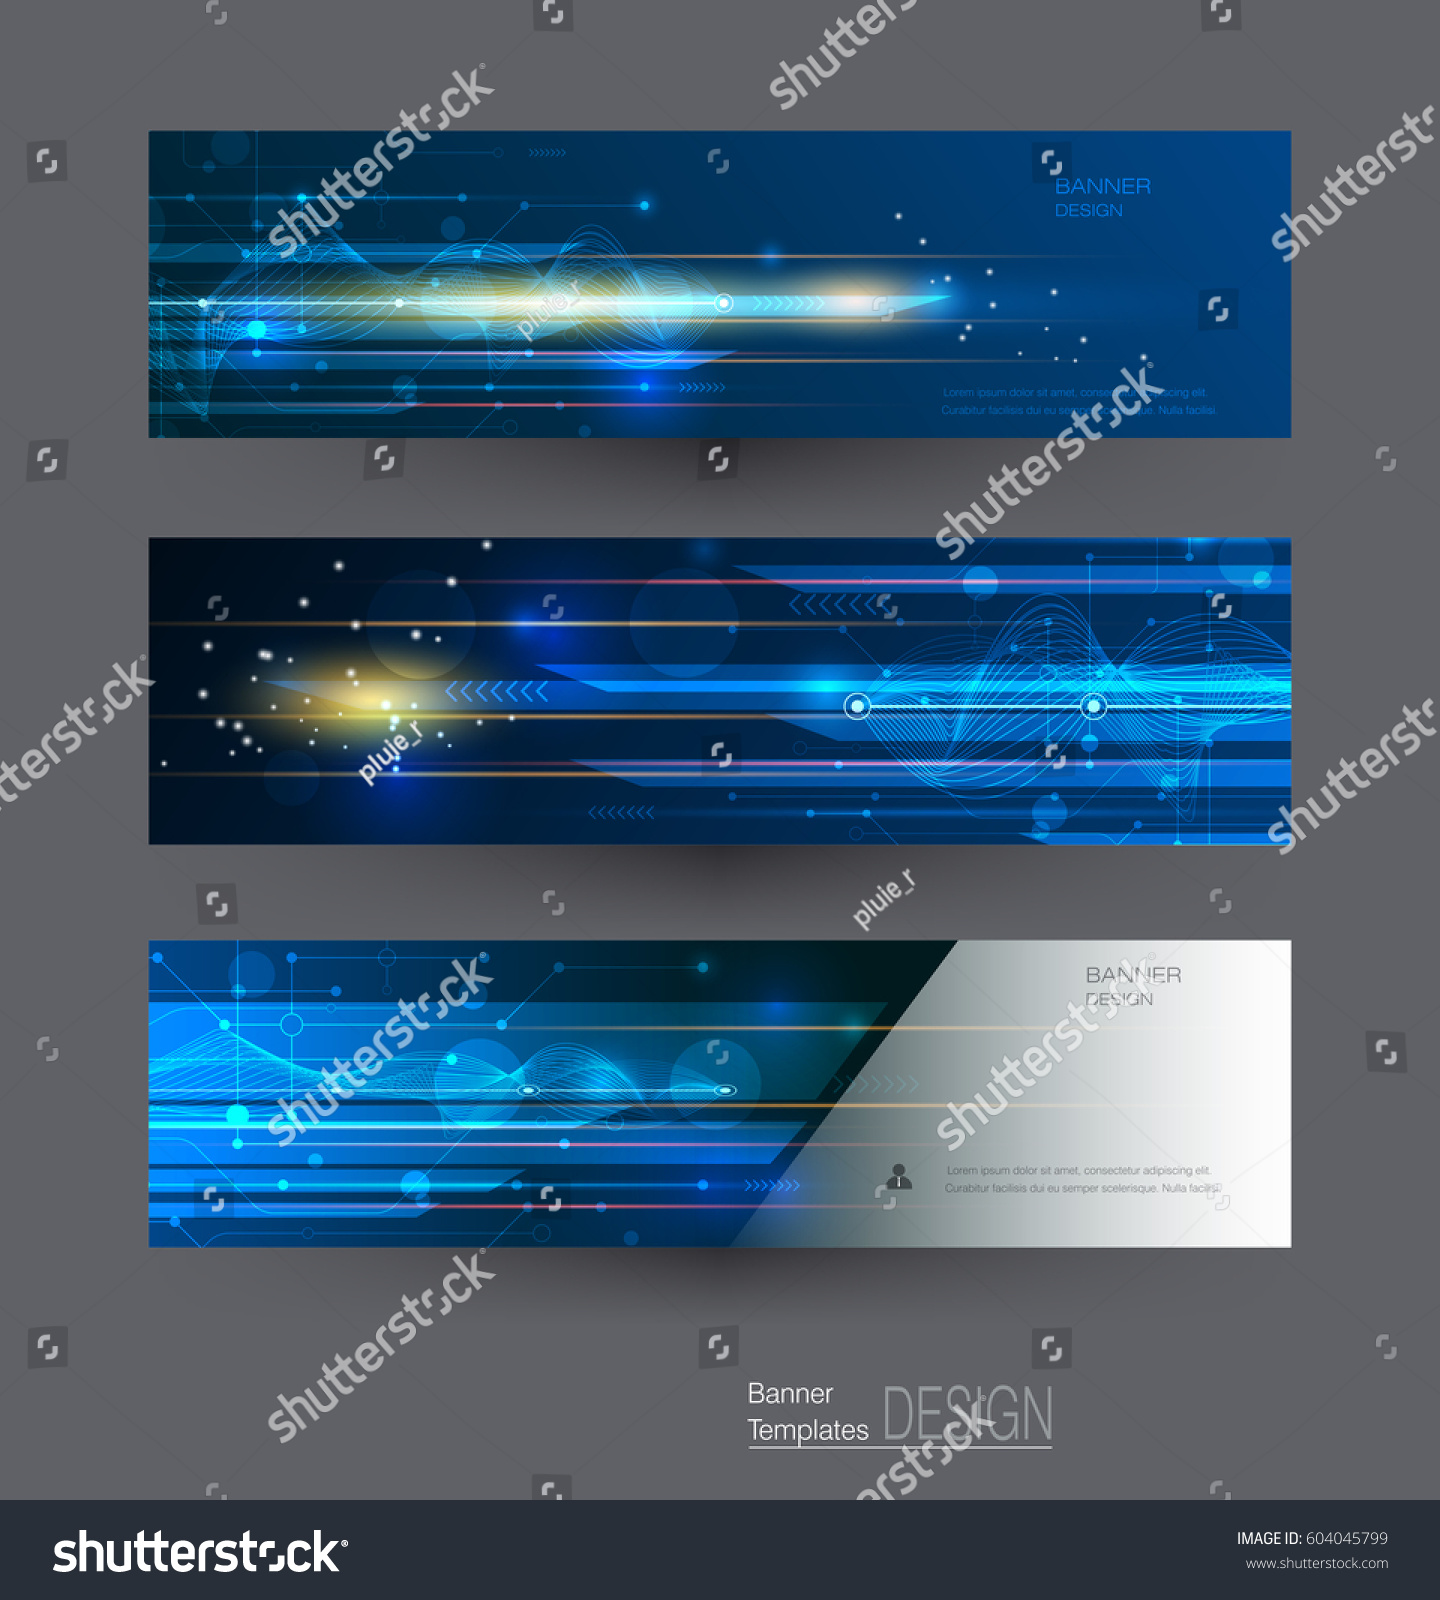 abstract banners set image speed movement stock vector 604045799 shutterstock. Black Bedroom Furniture Sets. Home Design Ideas